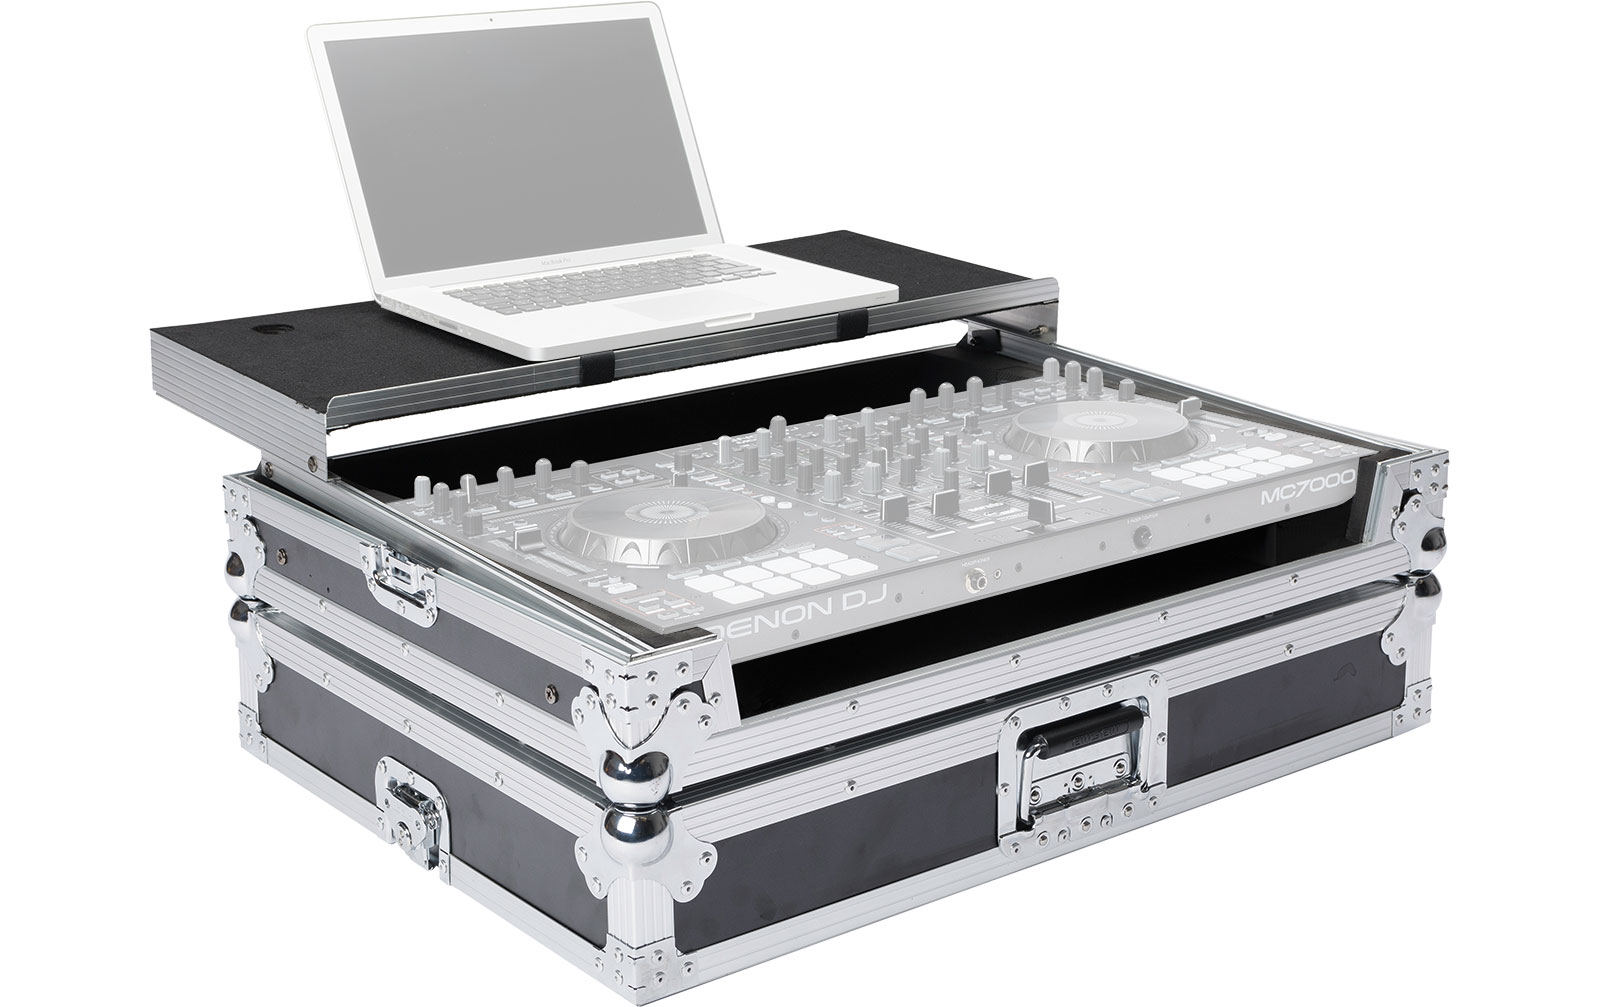 magma-dj-controller-workstation-mc-7000-black-silver